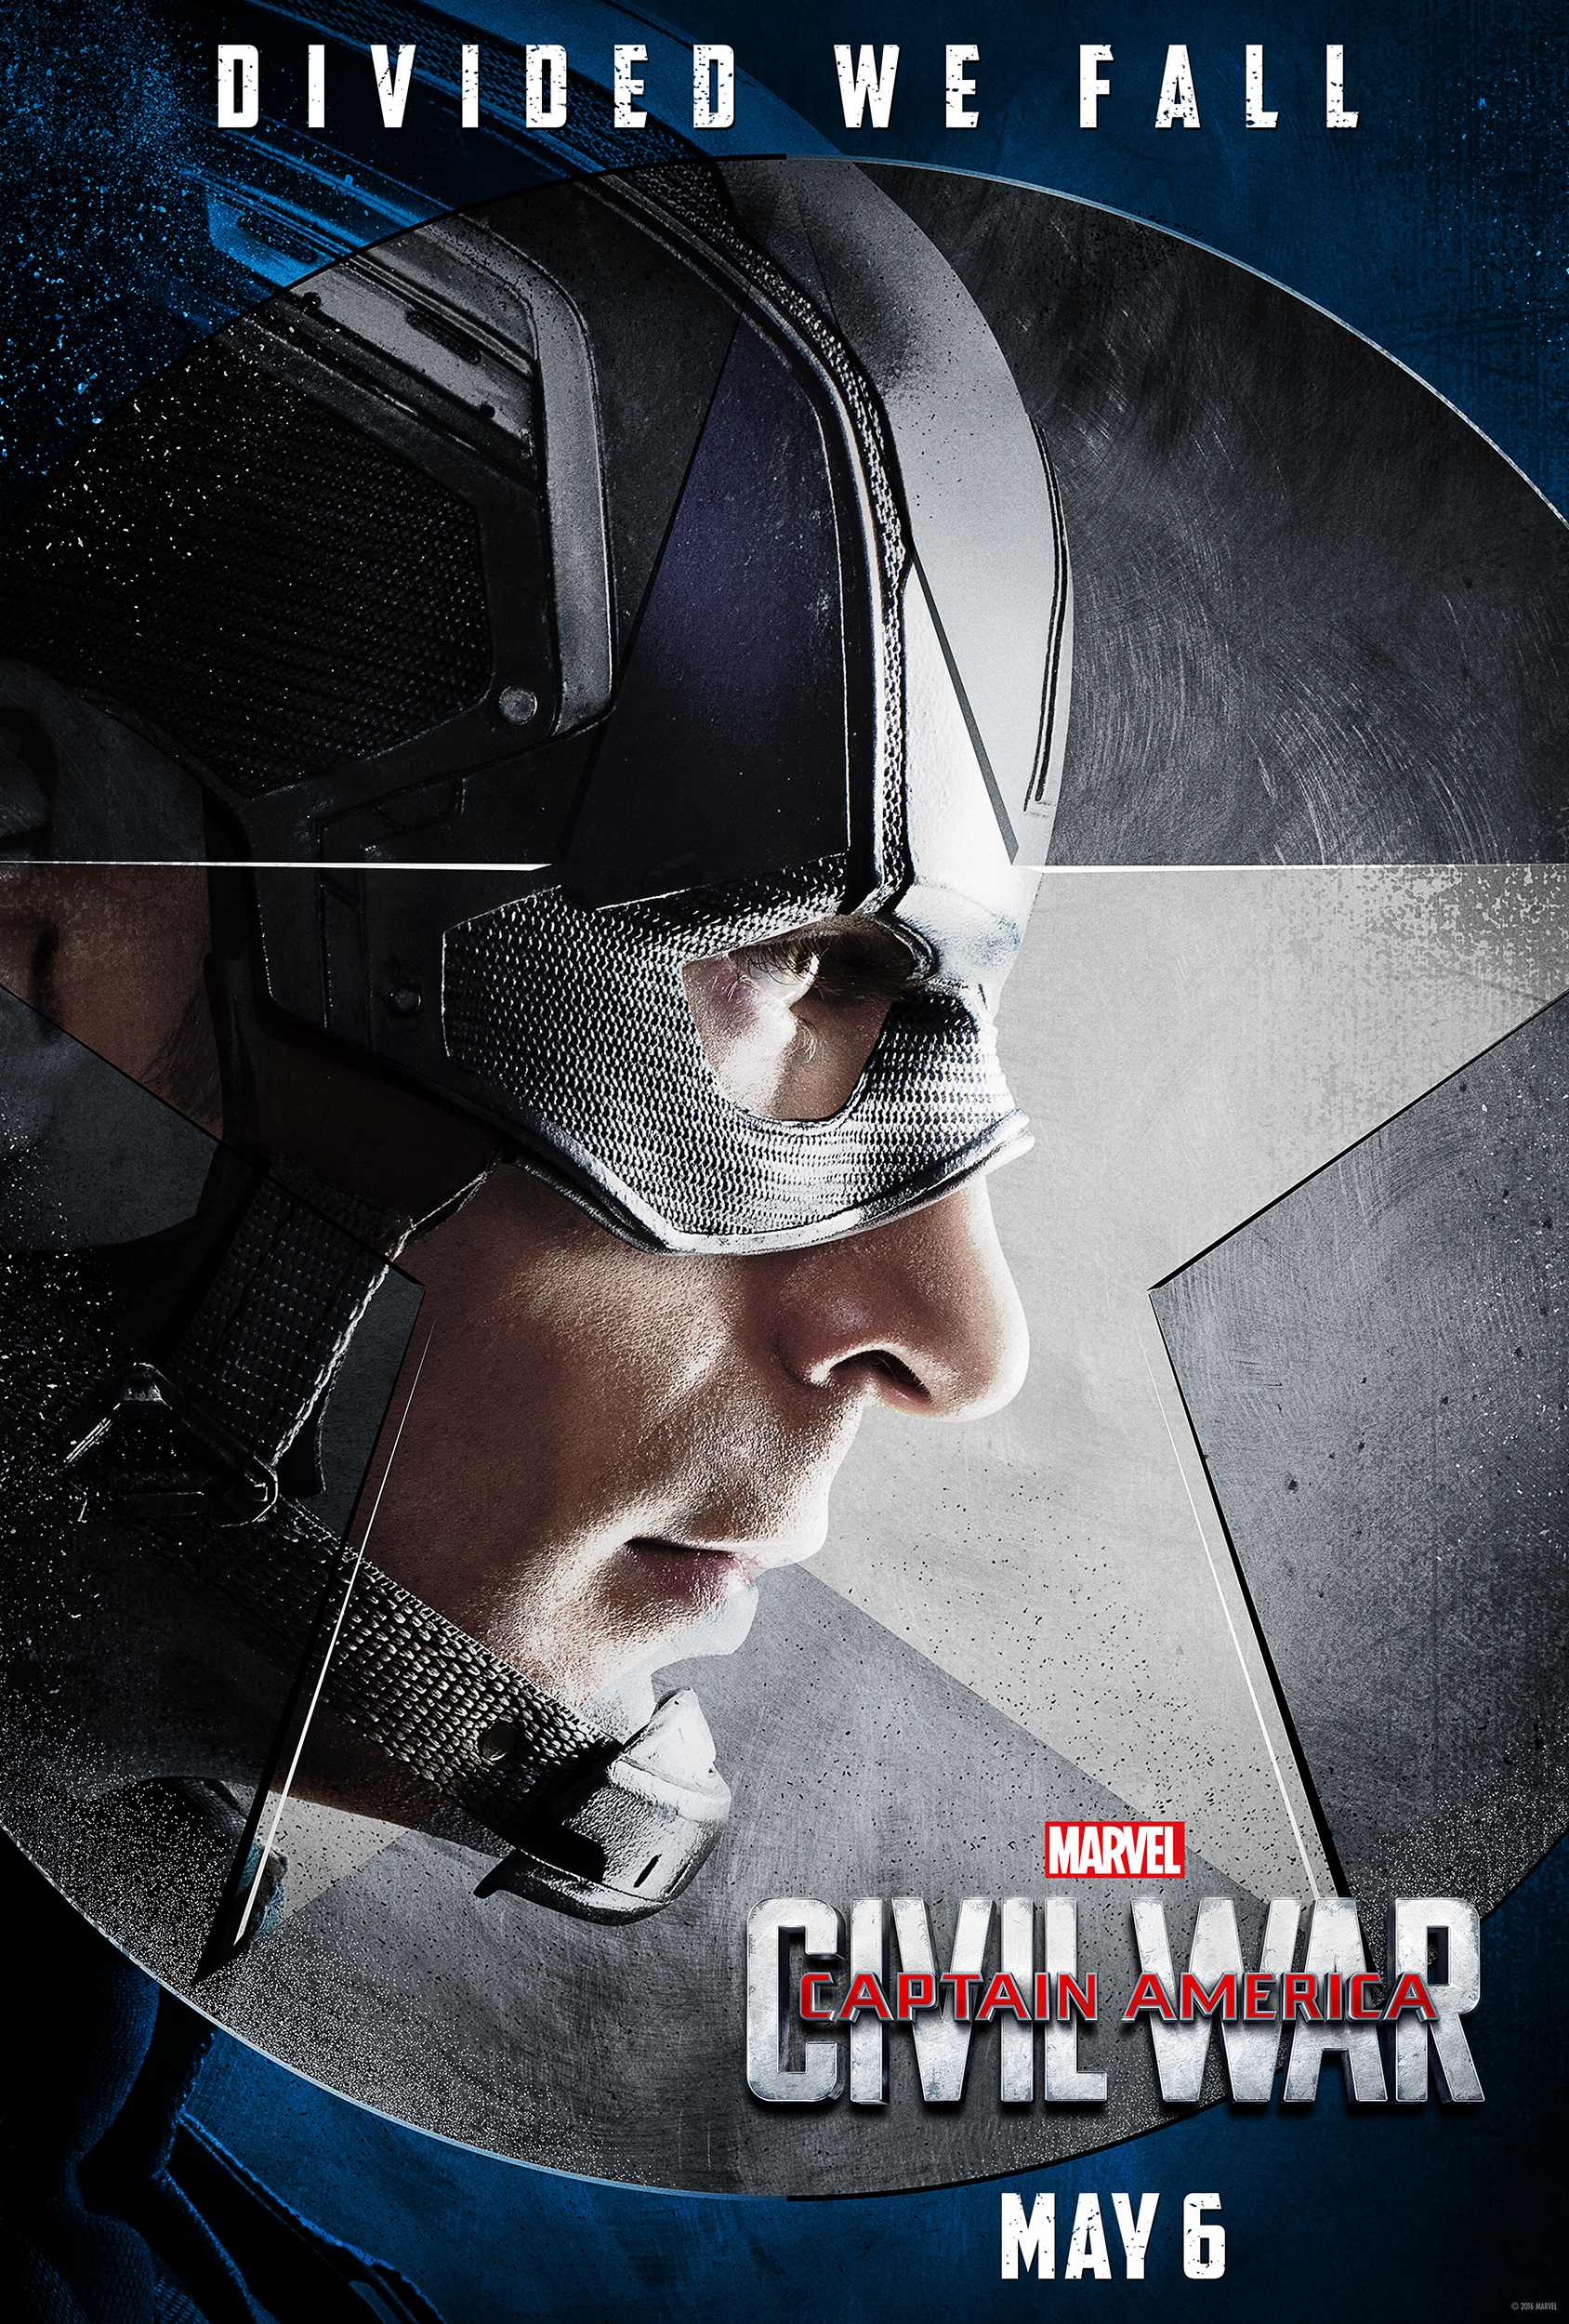 Captain America: Civil War posters